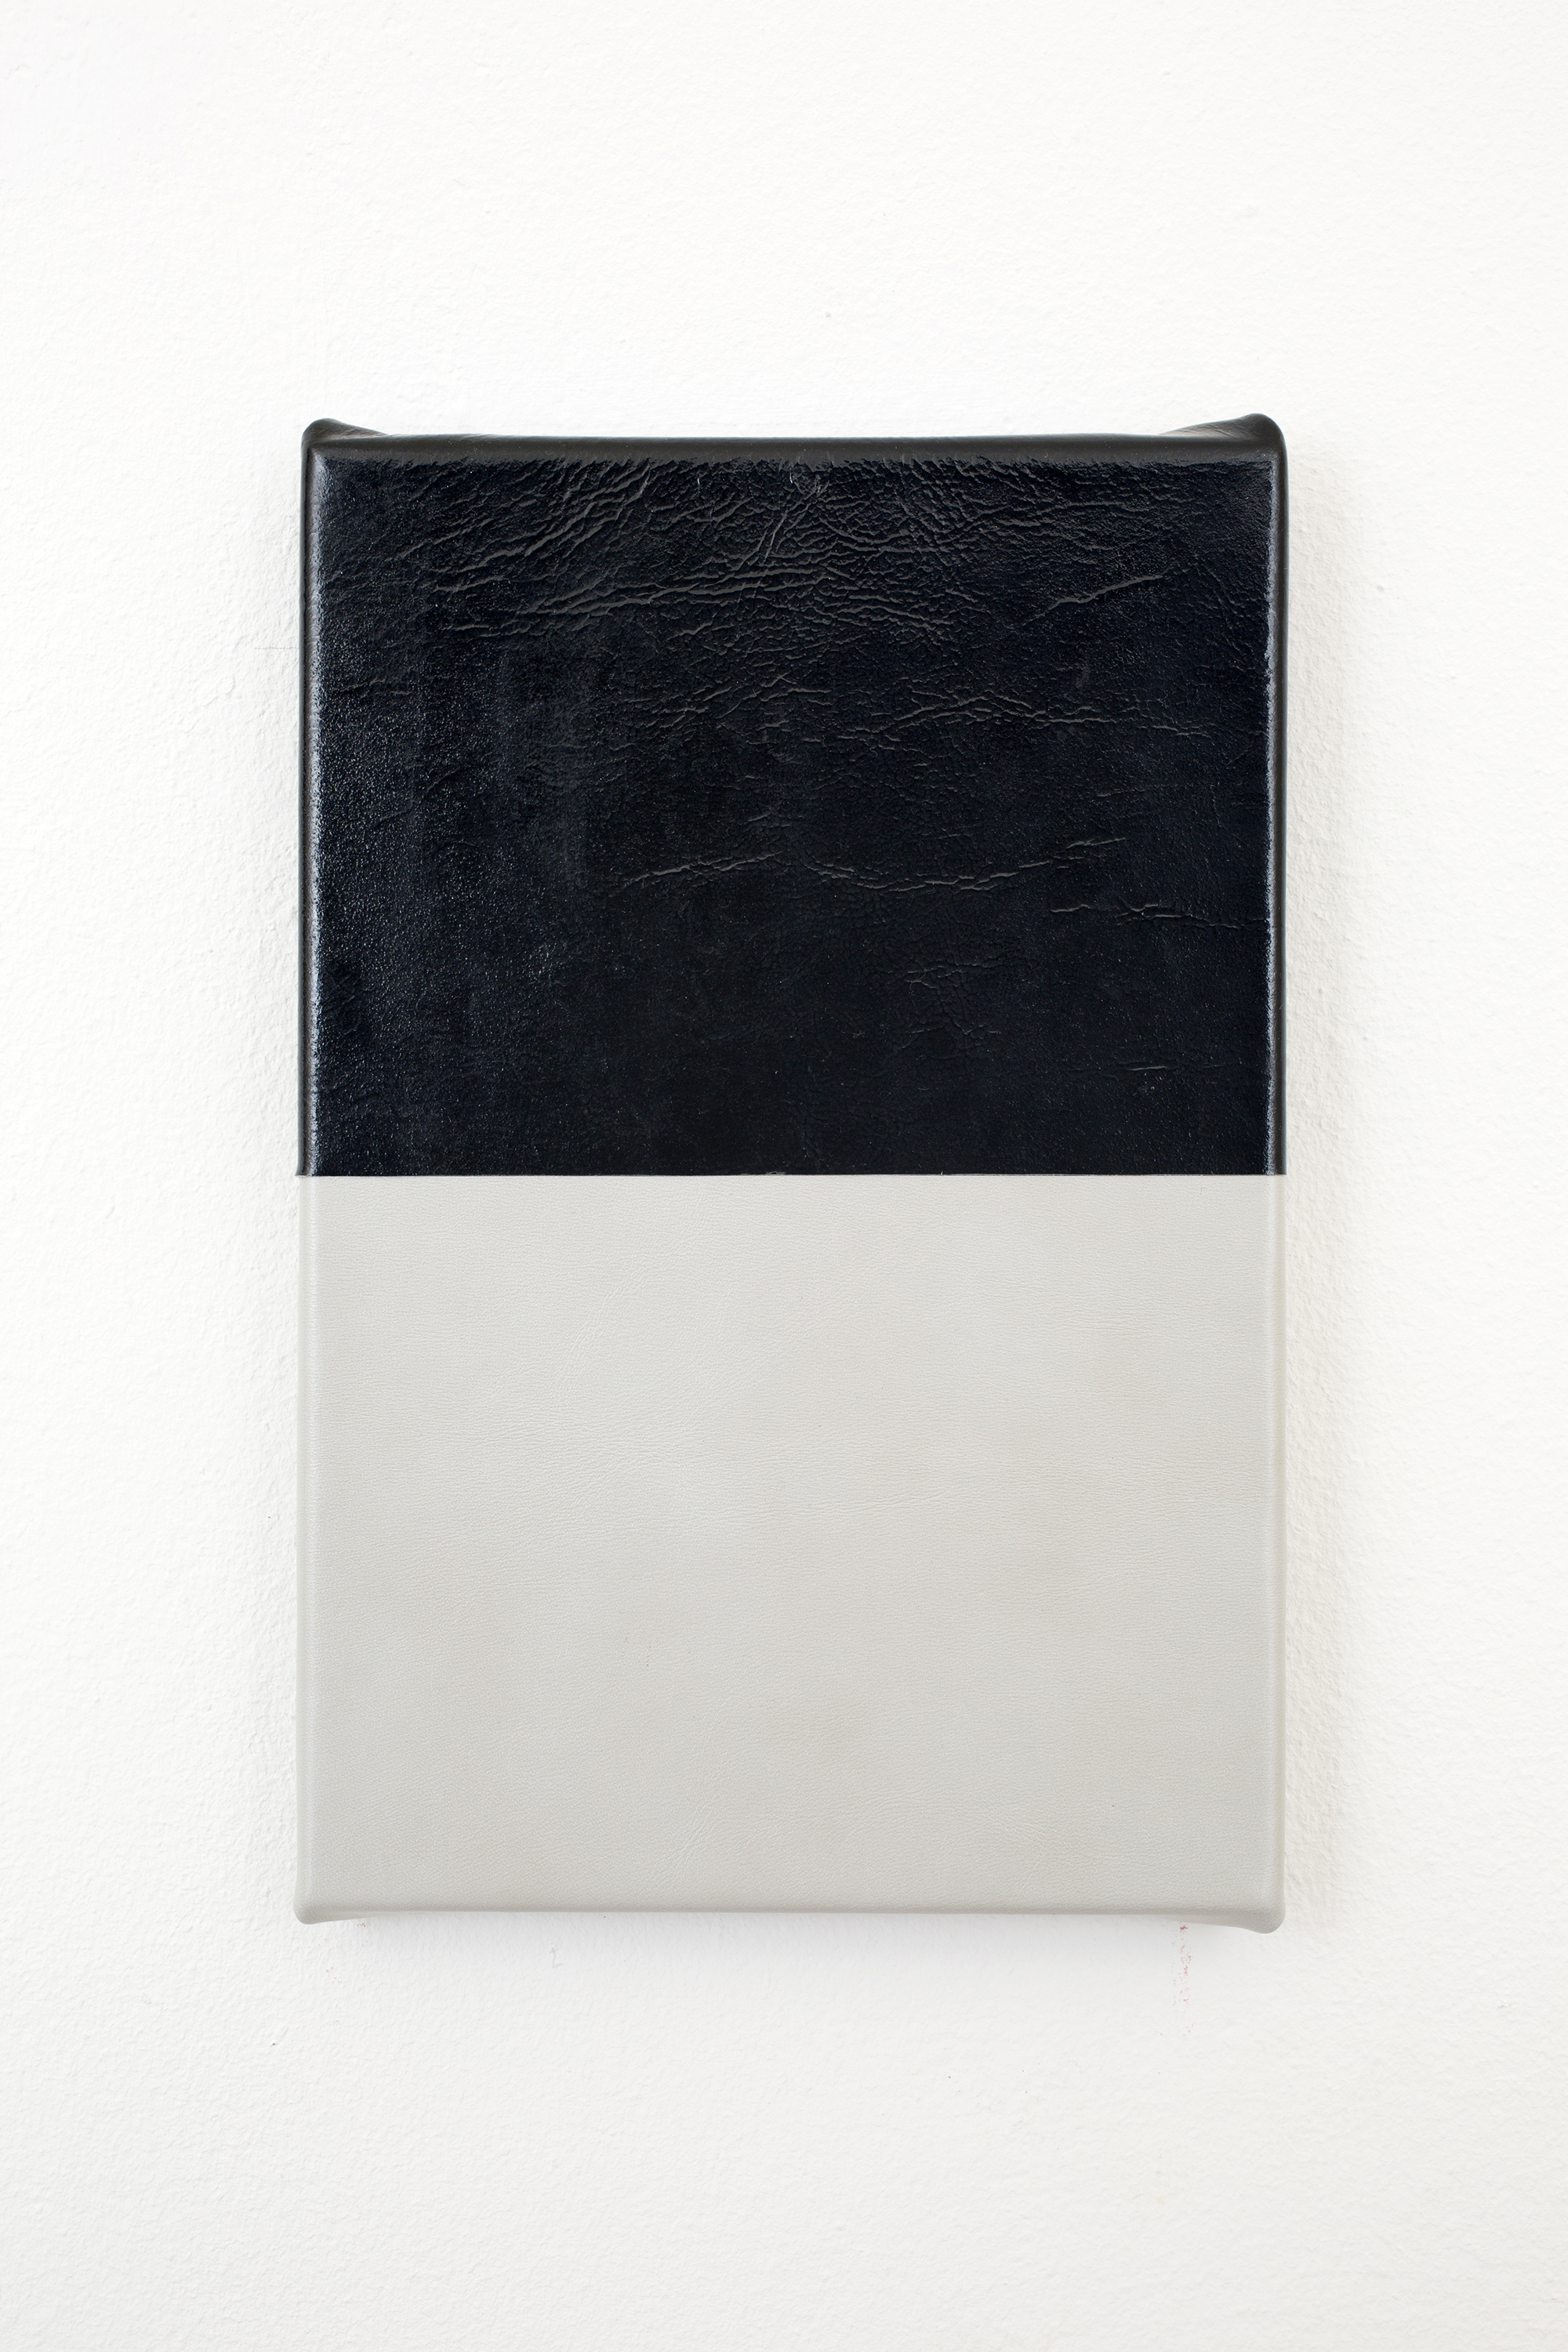 Untitled, 2015, leather on canvas, 24 x 30 cm